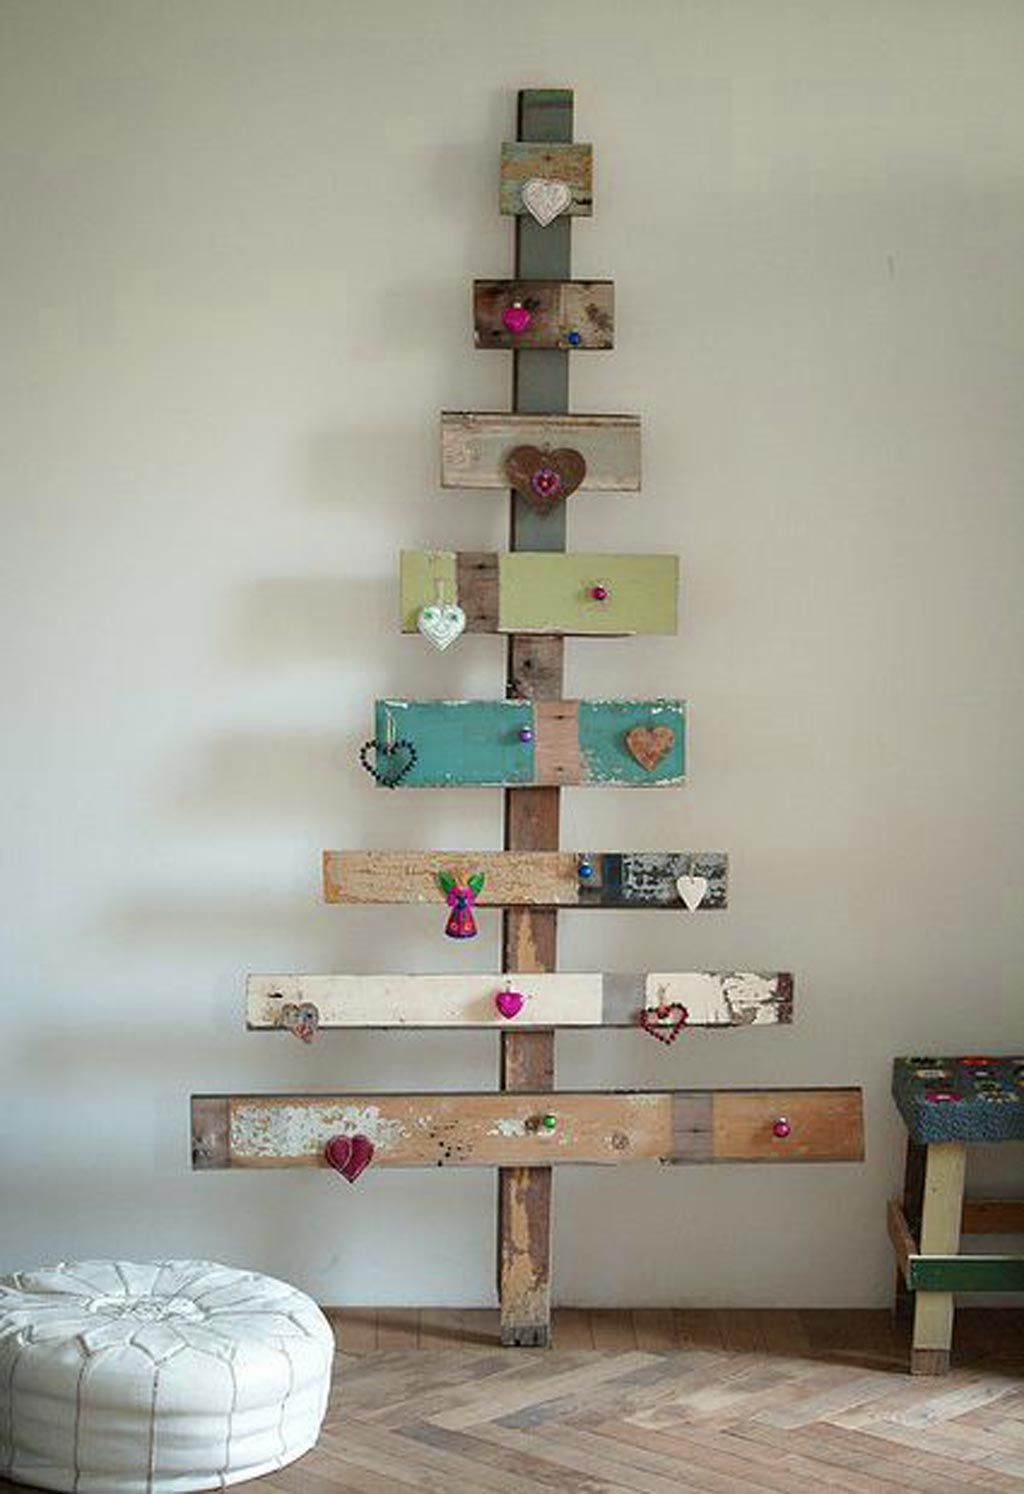 Home ideas top 10 wood pallet projects for your house wood pallet projects christmas